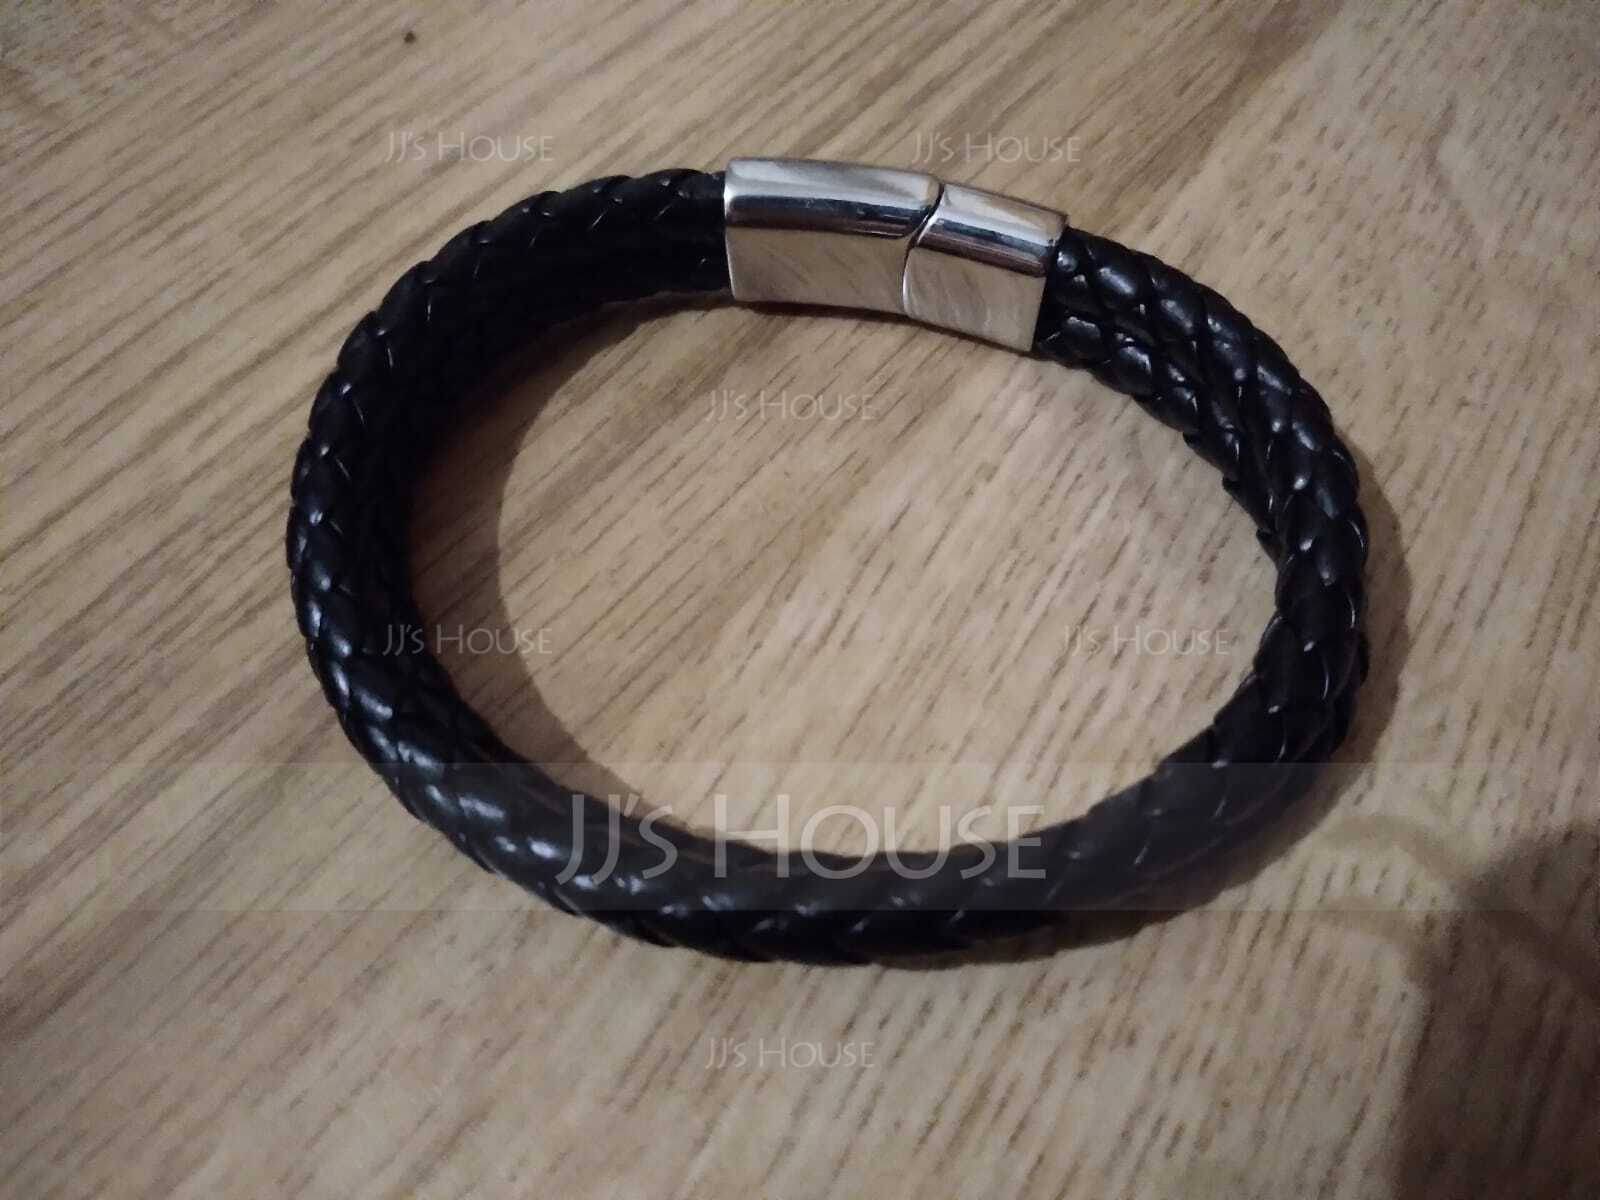 Custom Platinum Plated Men Braided Leather Bracelets - Gifts For Him